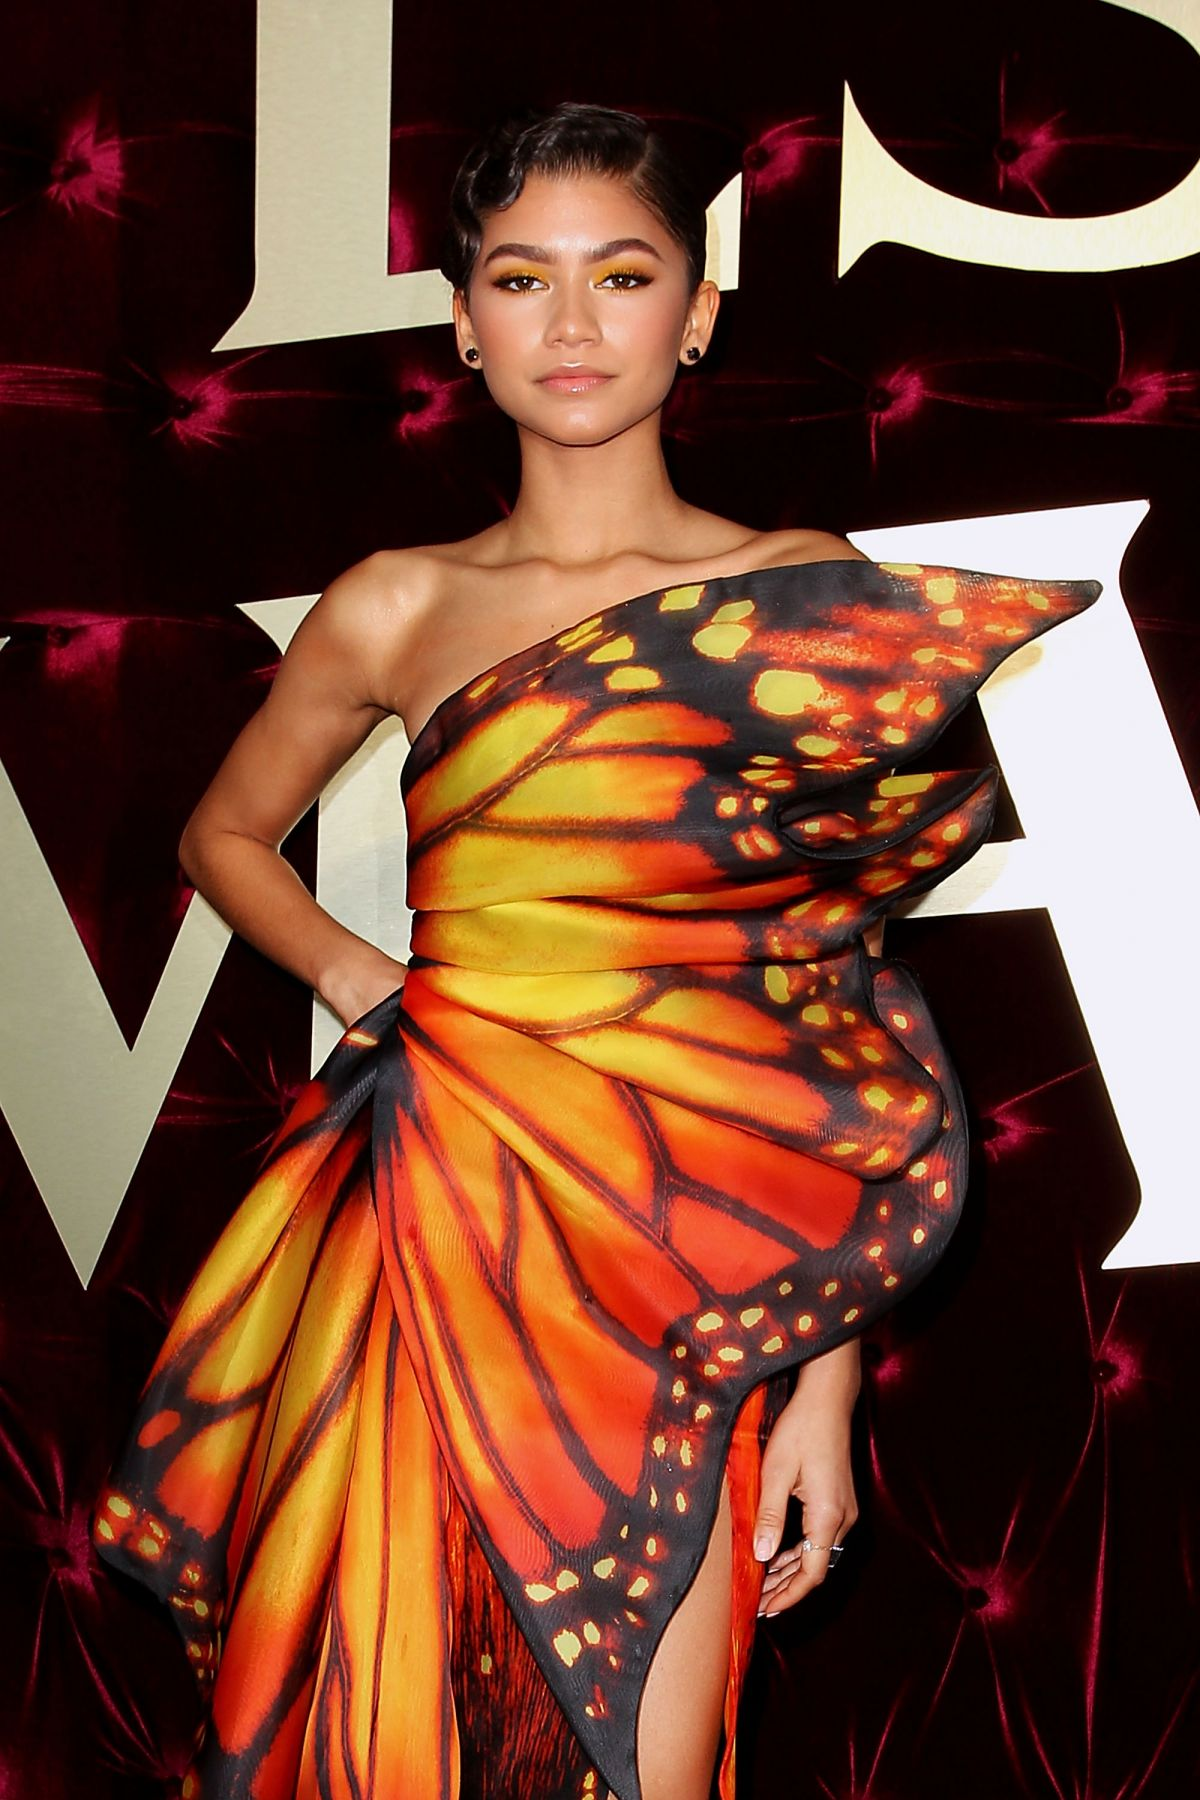 Zendaya Coleman At Red Carpet For Premiere Of The Greatest